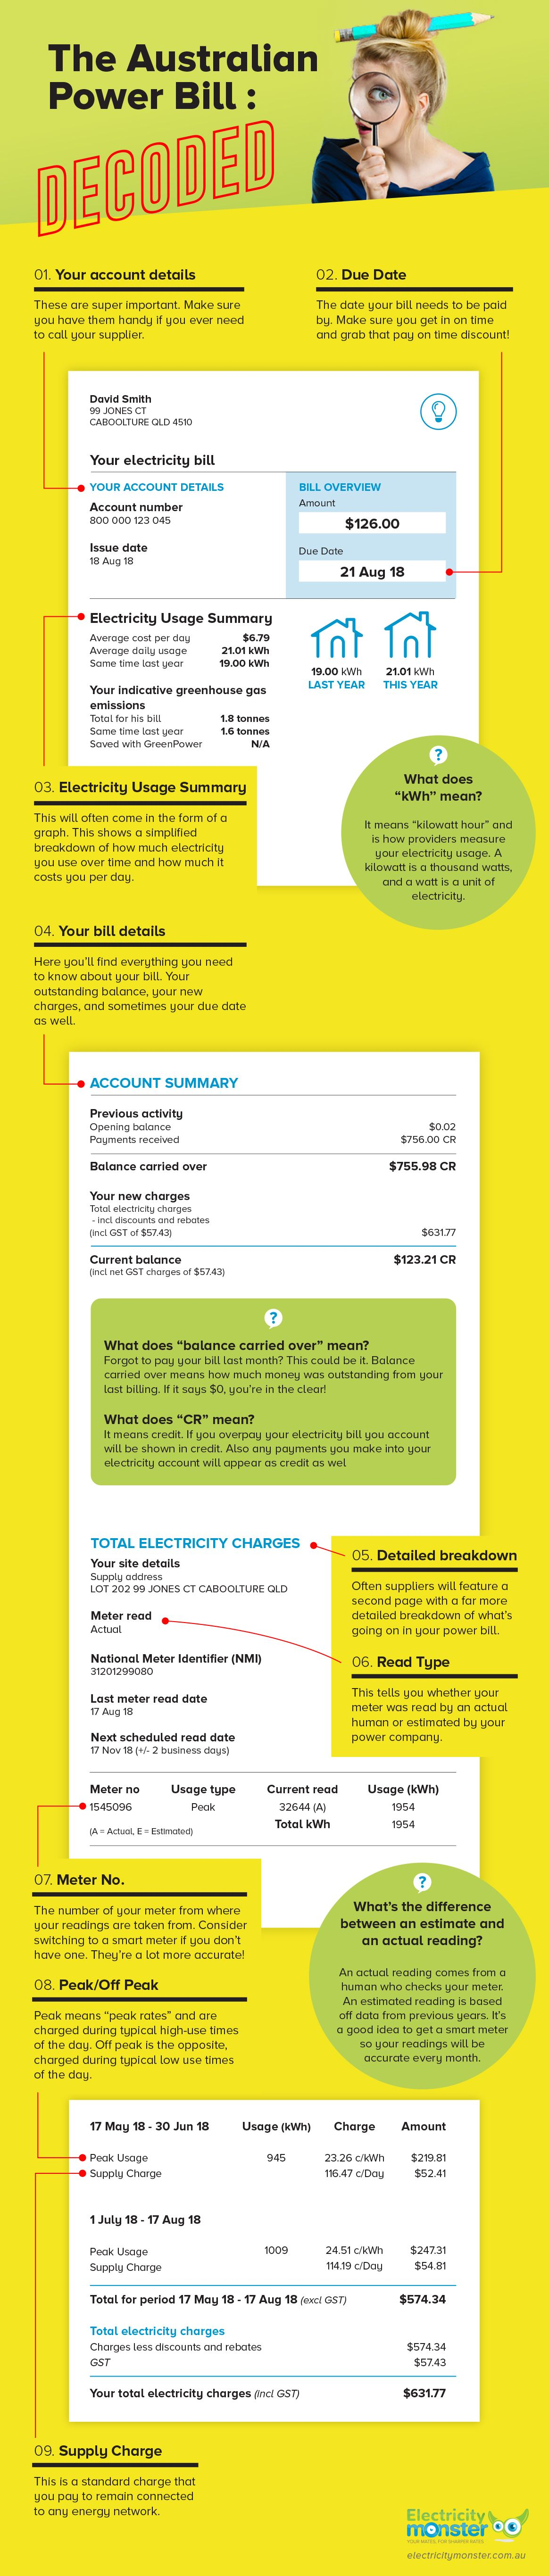 The Australian Power Bill: Decoded (Infographic)